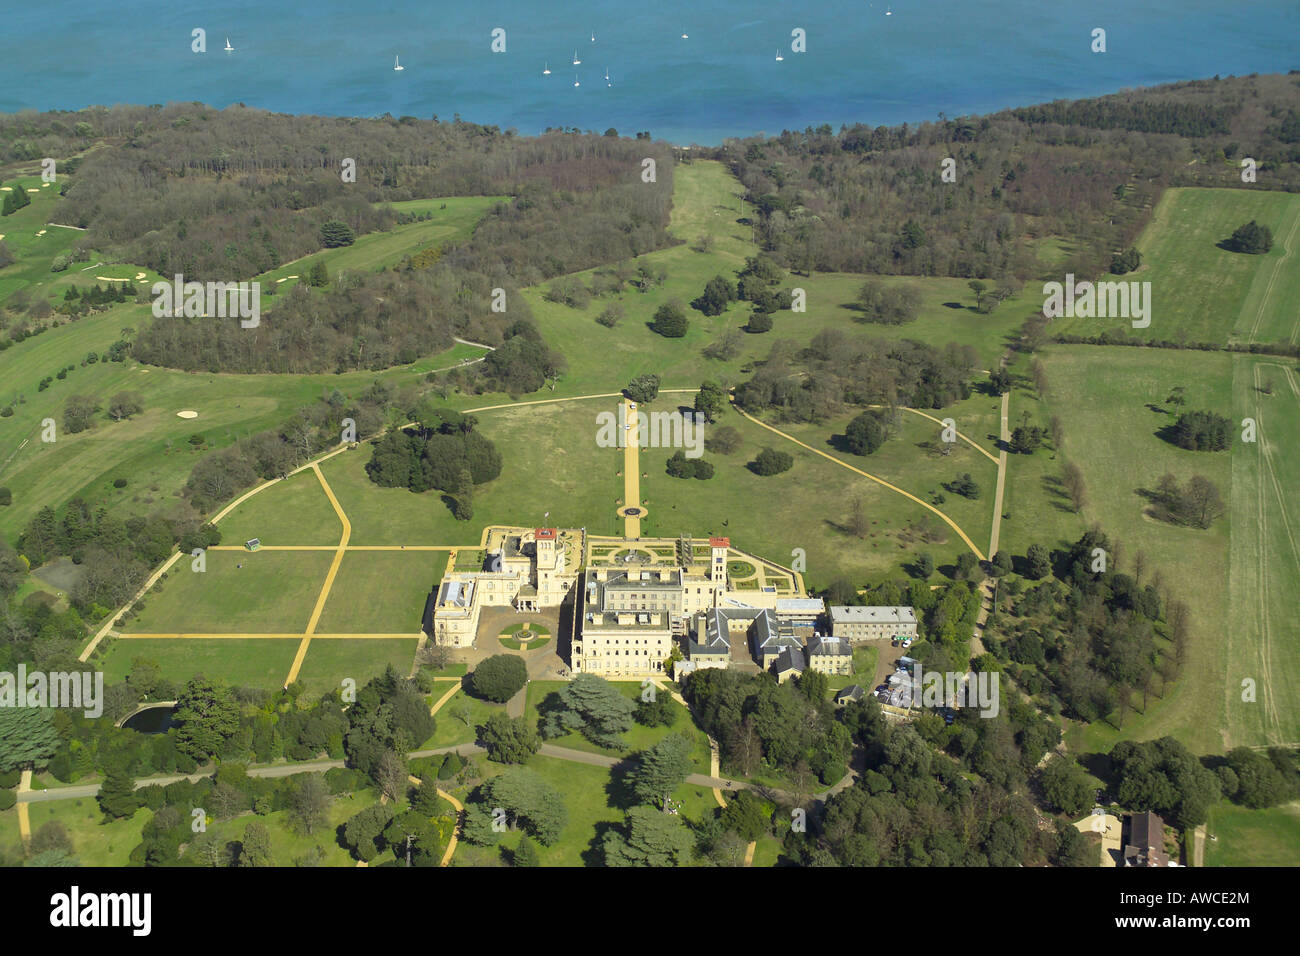 Aerial view of Osborne House on the Isle of Wight, which is the former royal residence of Queen Victoria Stock Photo